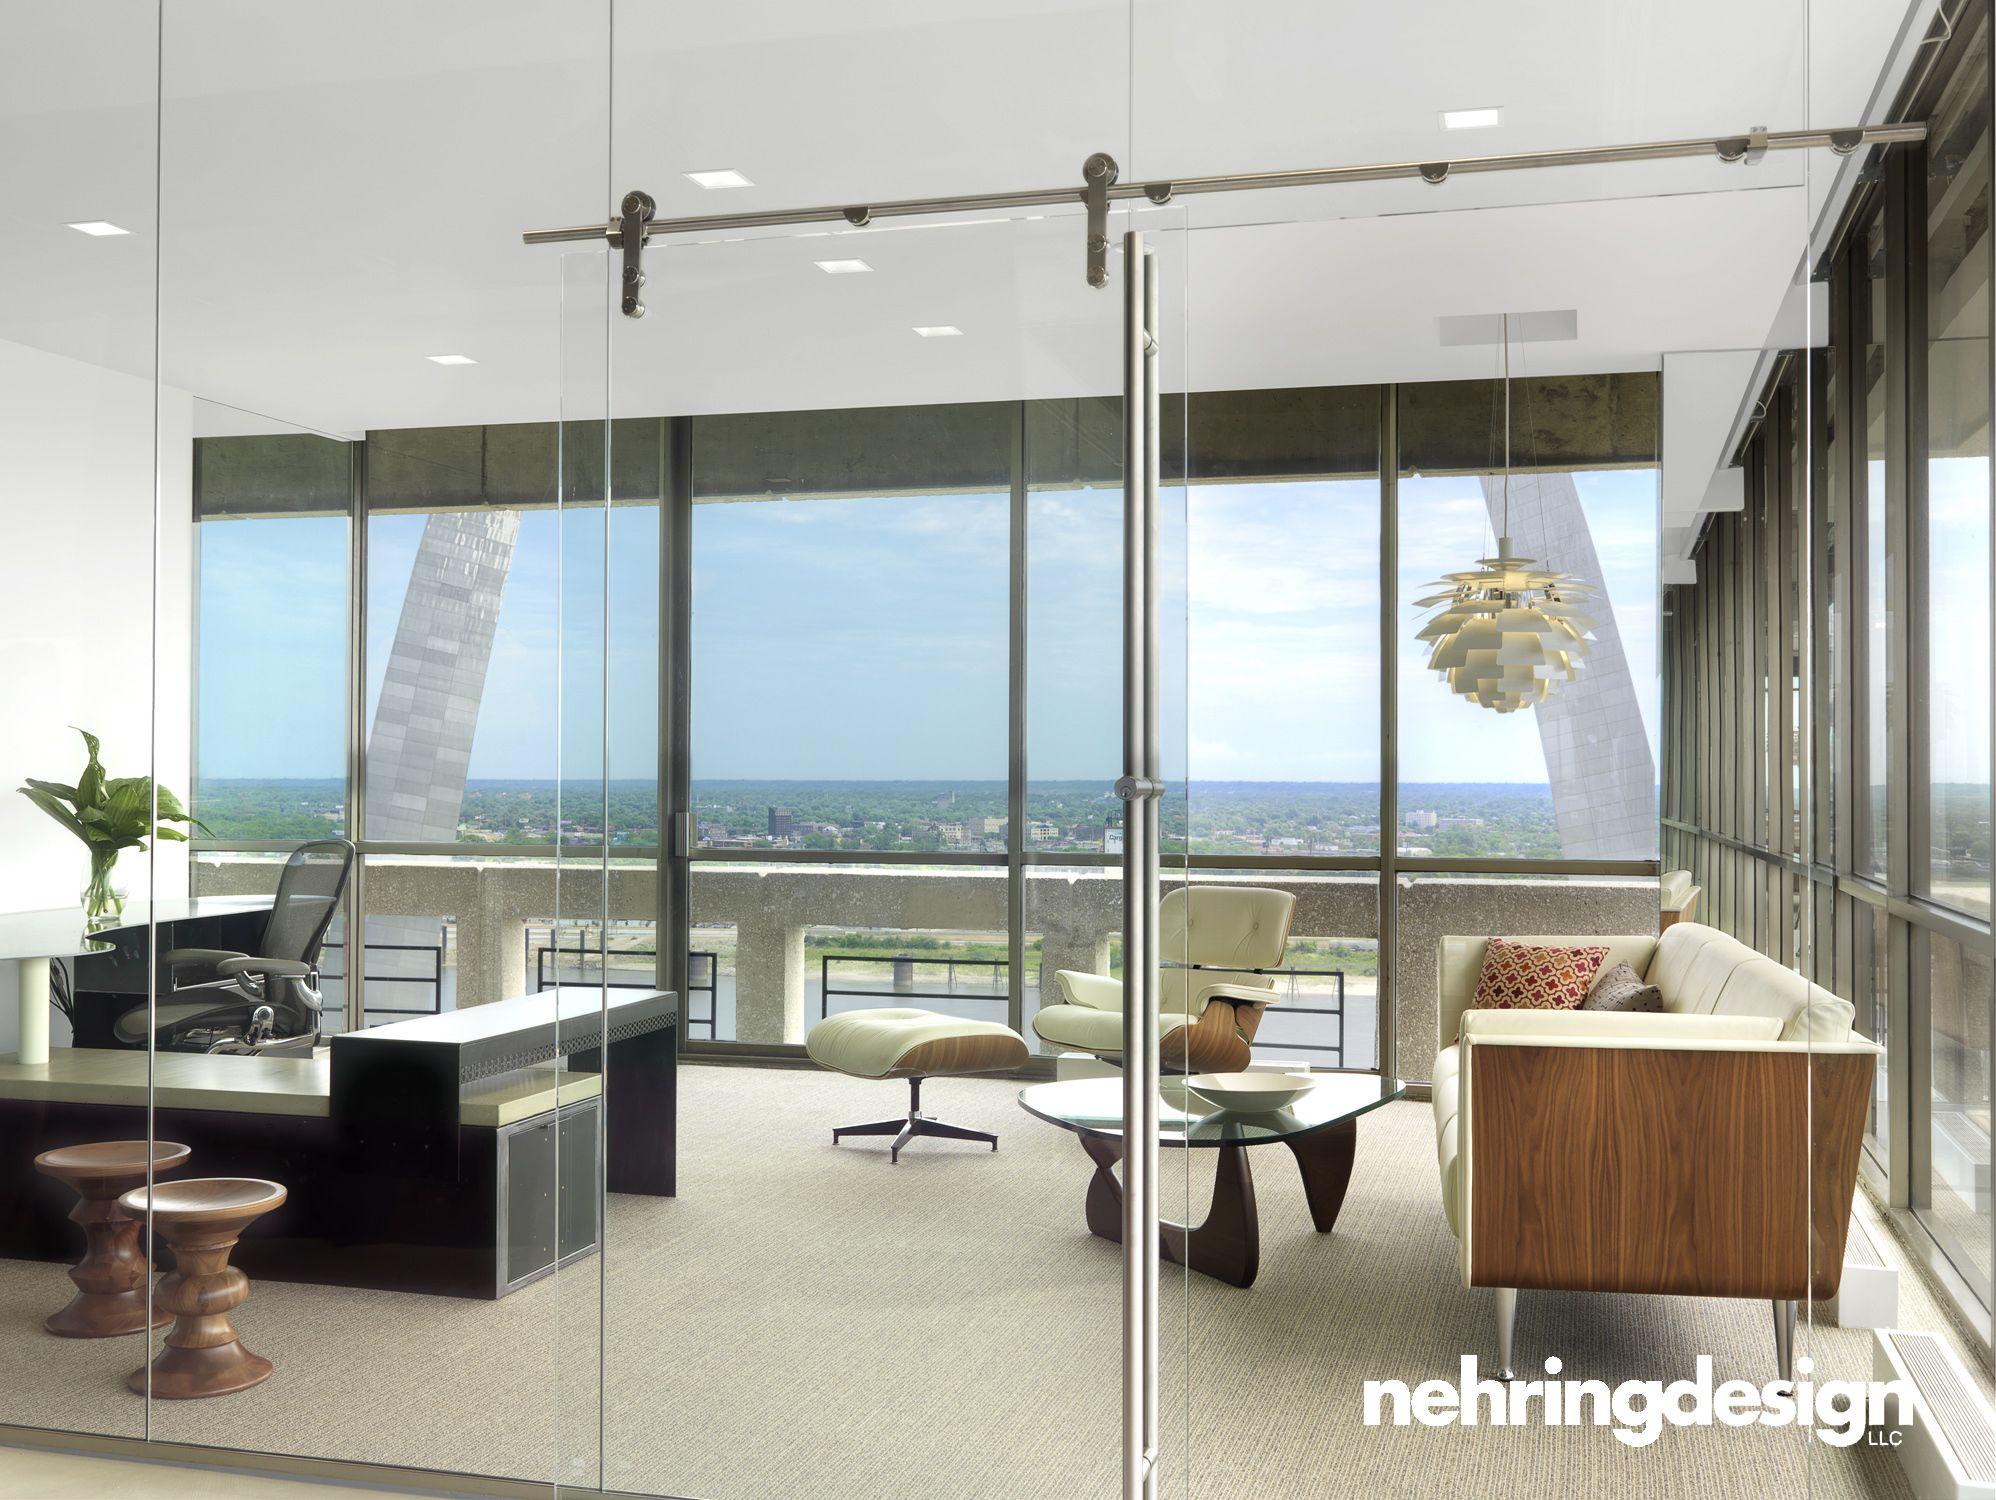 All glass office wall prevents blocking windows In just a few